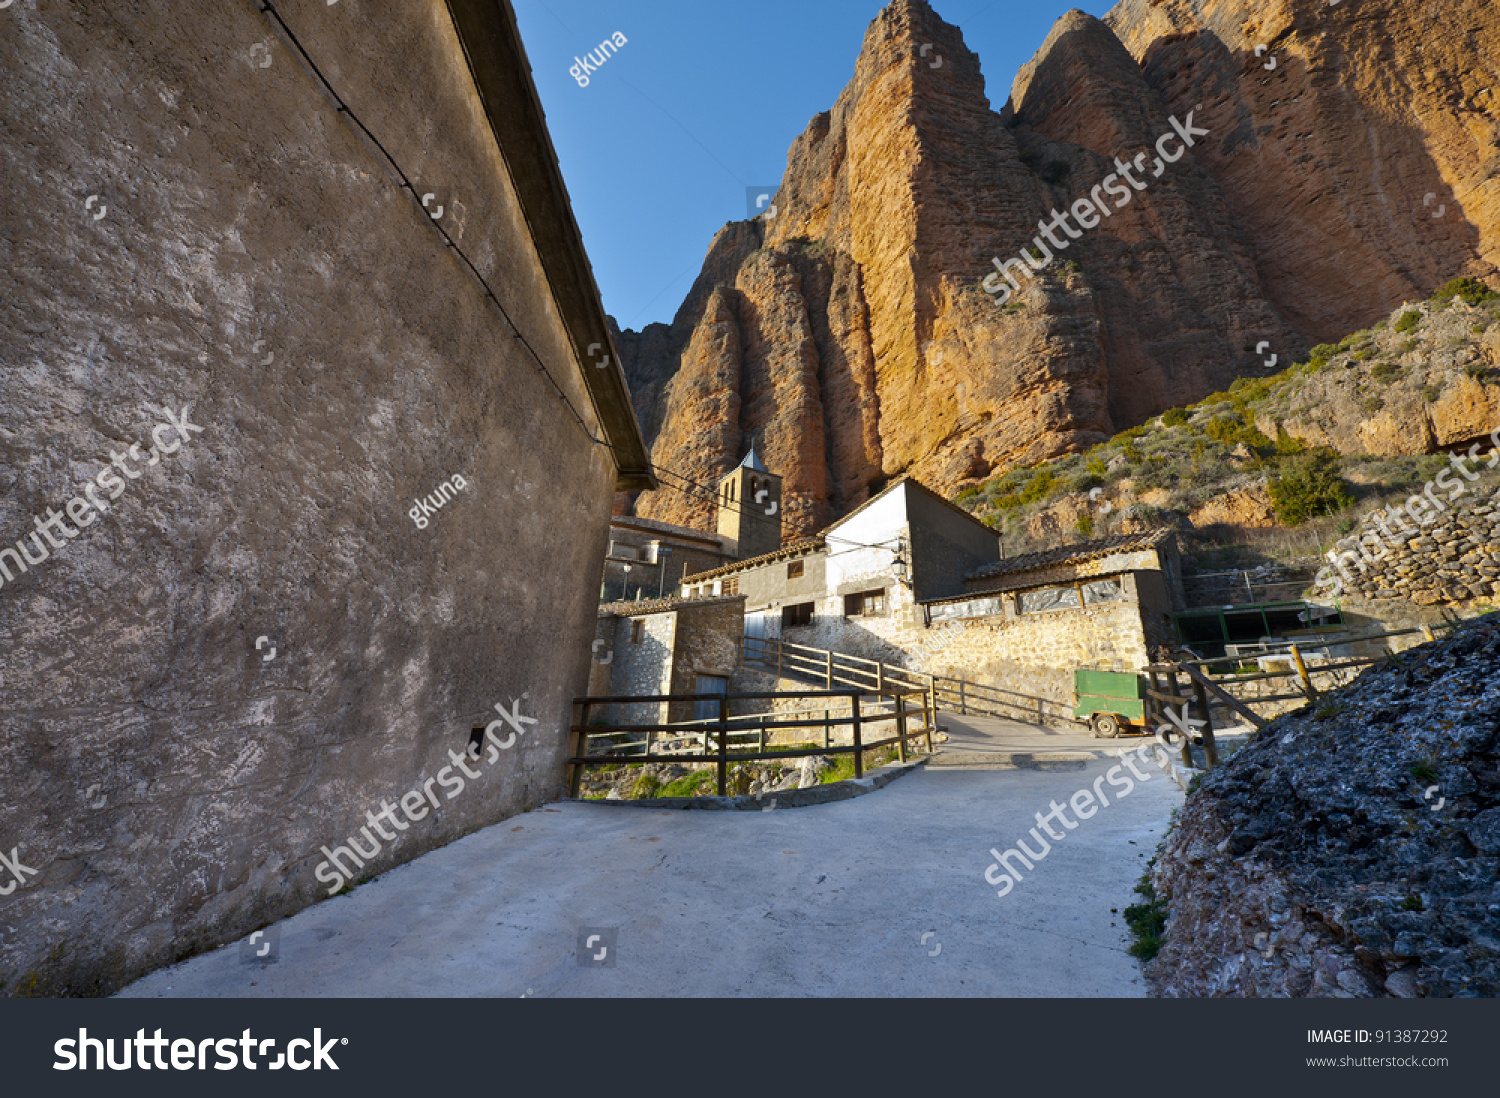 Rocks In Spanish Part - 16: Spanish Medieval Church At The Foot Of The Rocks In The Pyrenees